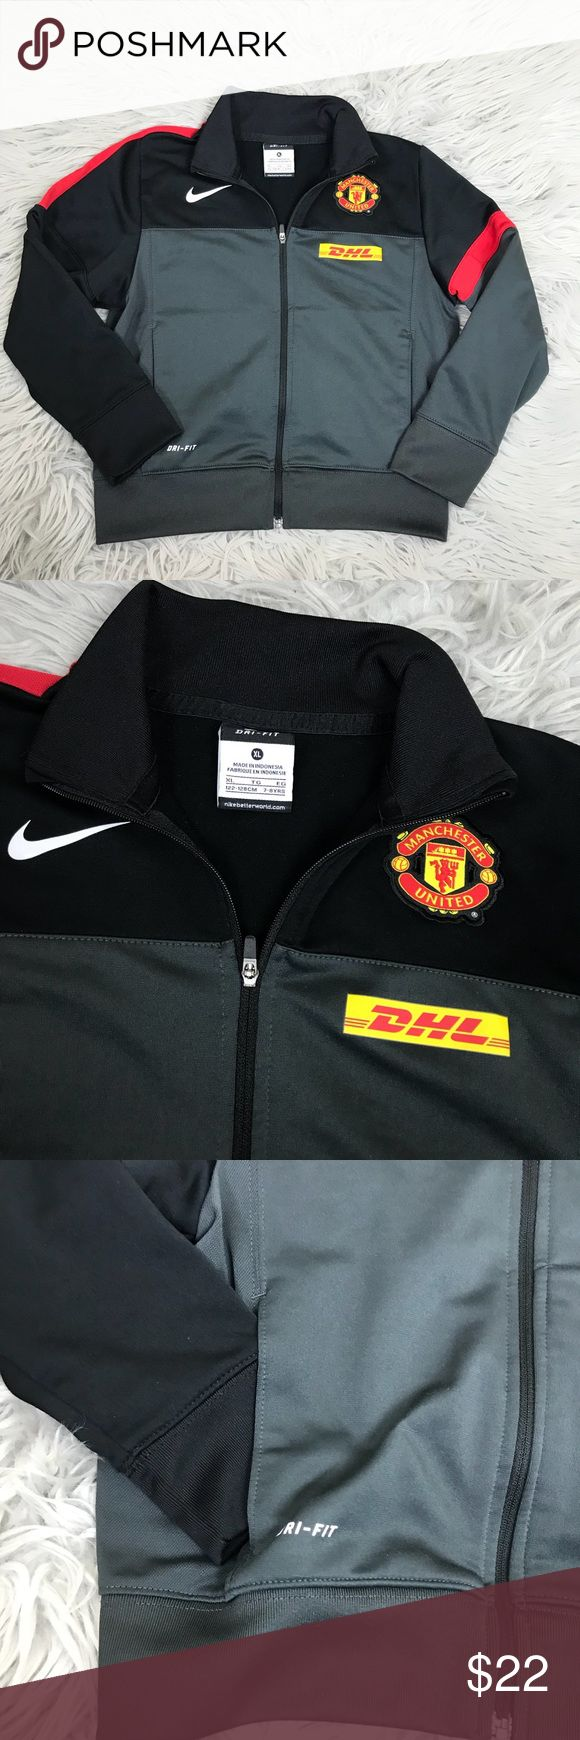 "Nike Manchester United Full Zip Jacket Nike Manchester United Full Zip Jacket. Size XL 7-8 year old. Excellent conditions no flaws and barely any wear. 16.75"" chest, 17"" length Nike Shirts & Tops Sweatshirts & Hoodies"